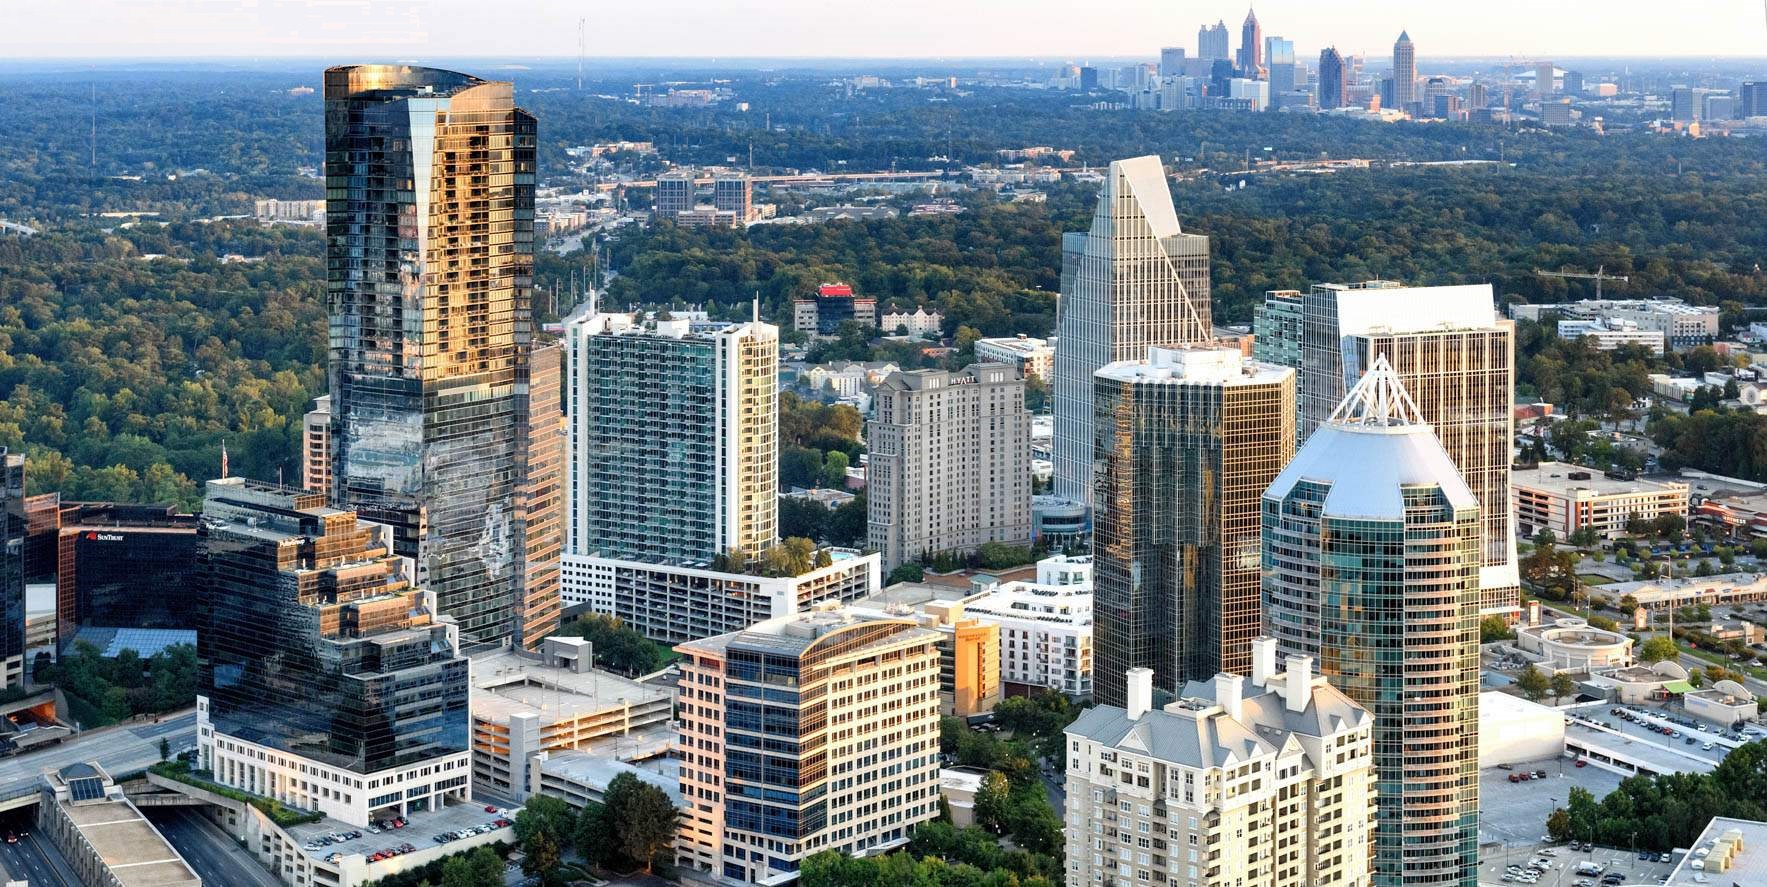 Atlanta Corporate ShortTerm Furnished Housing